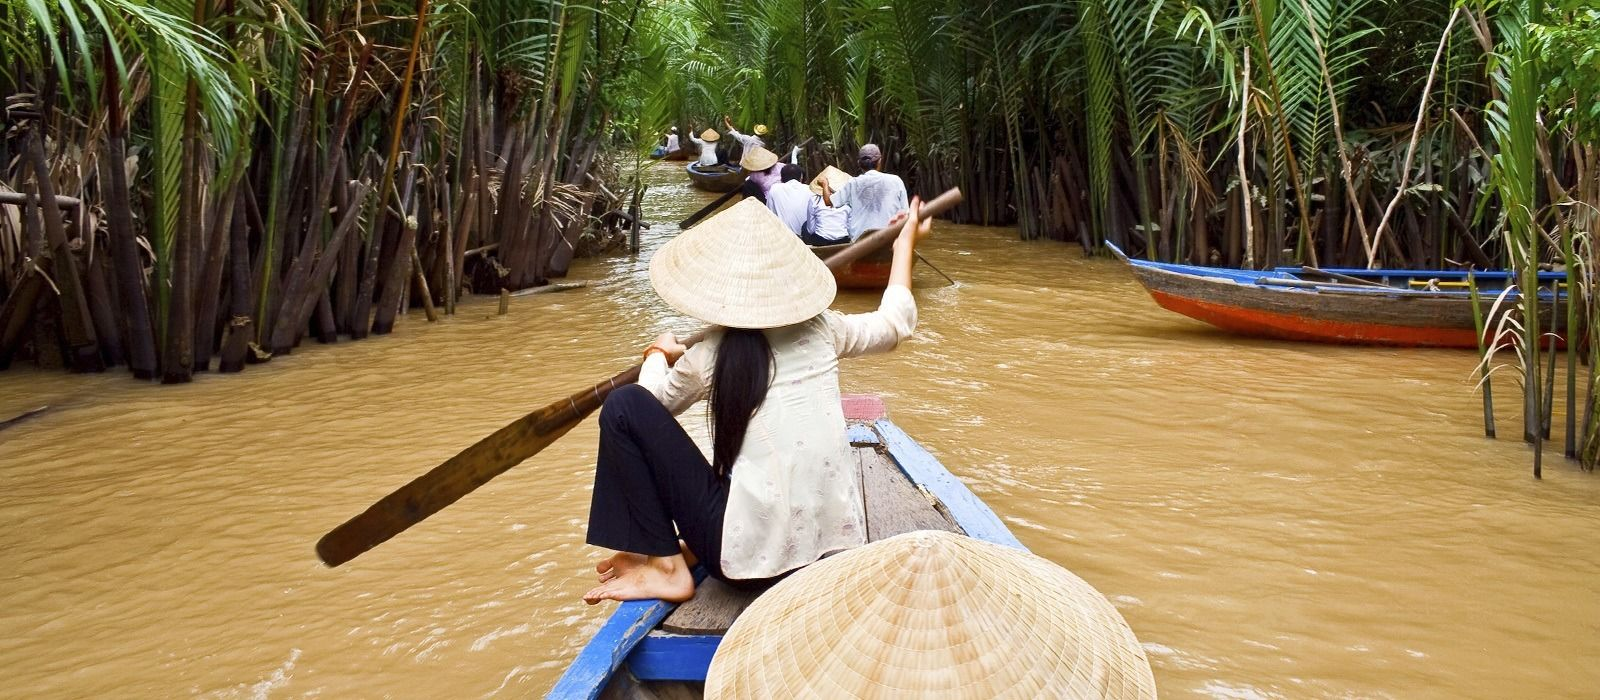 Vietnam: Indulgence & Hidden Gems Tour Trip 3